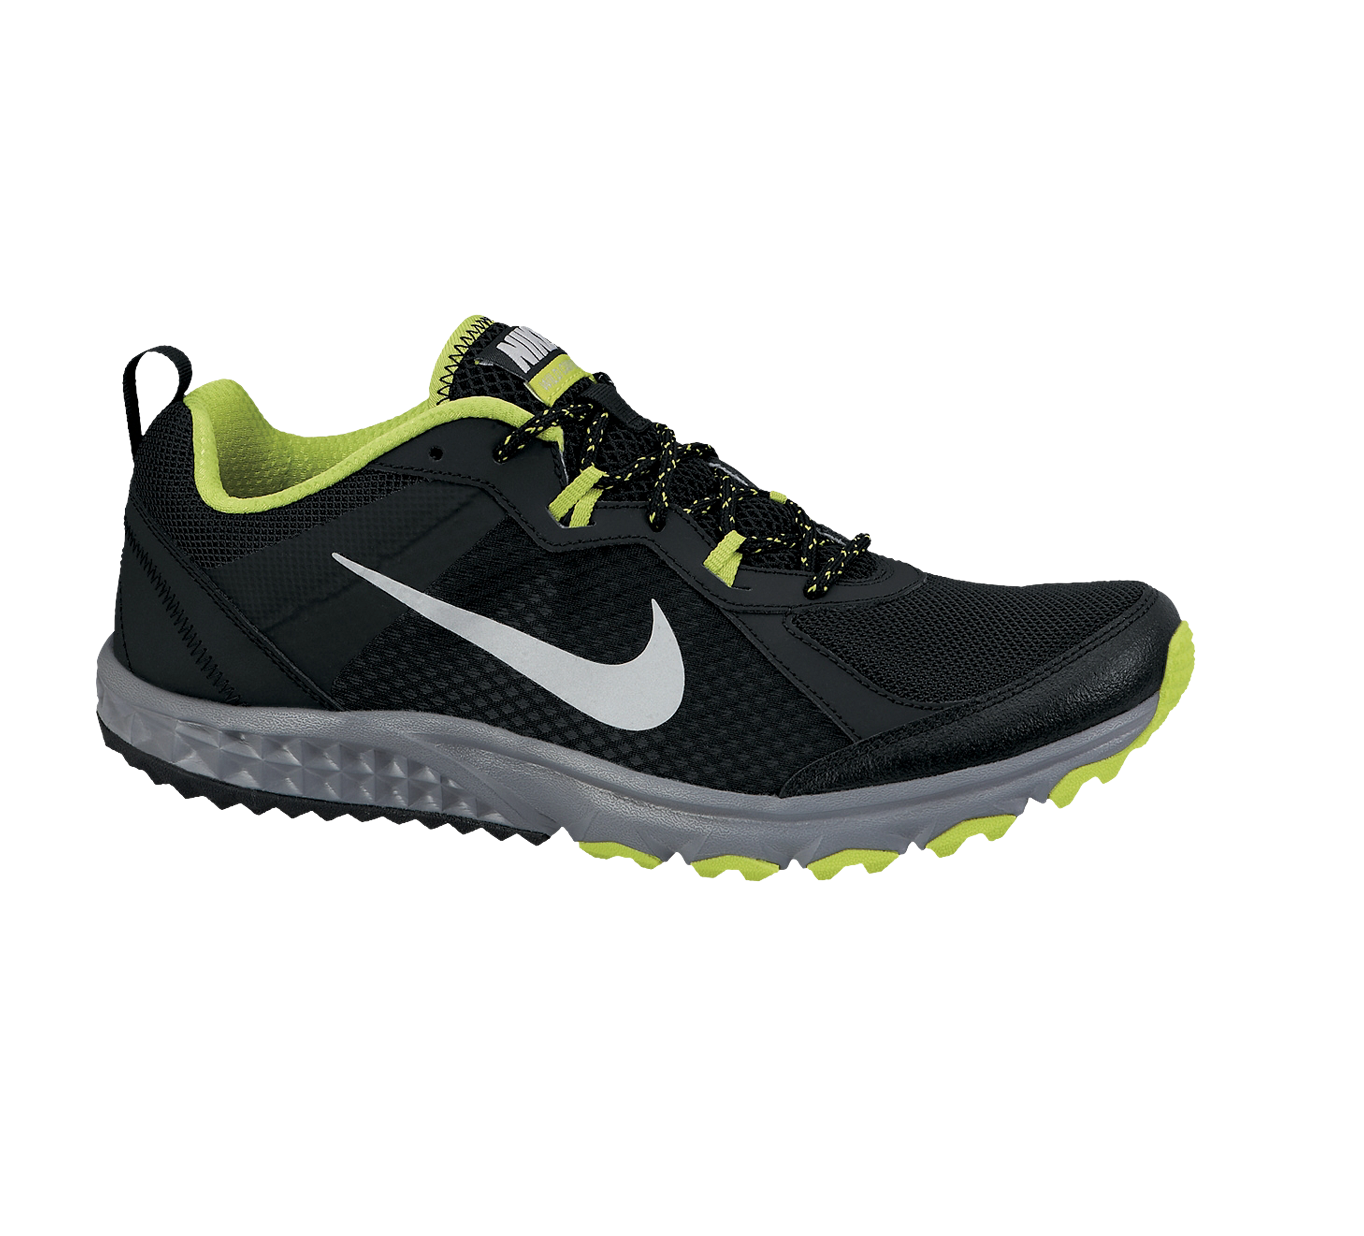 nike womens shoes clothing and gear nikecom - HD1364×1236